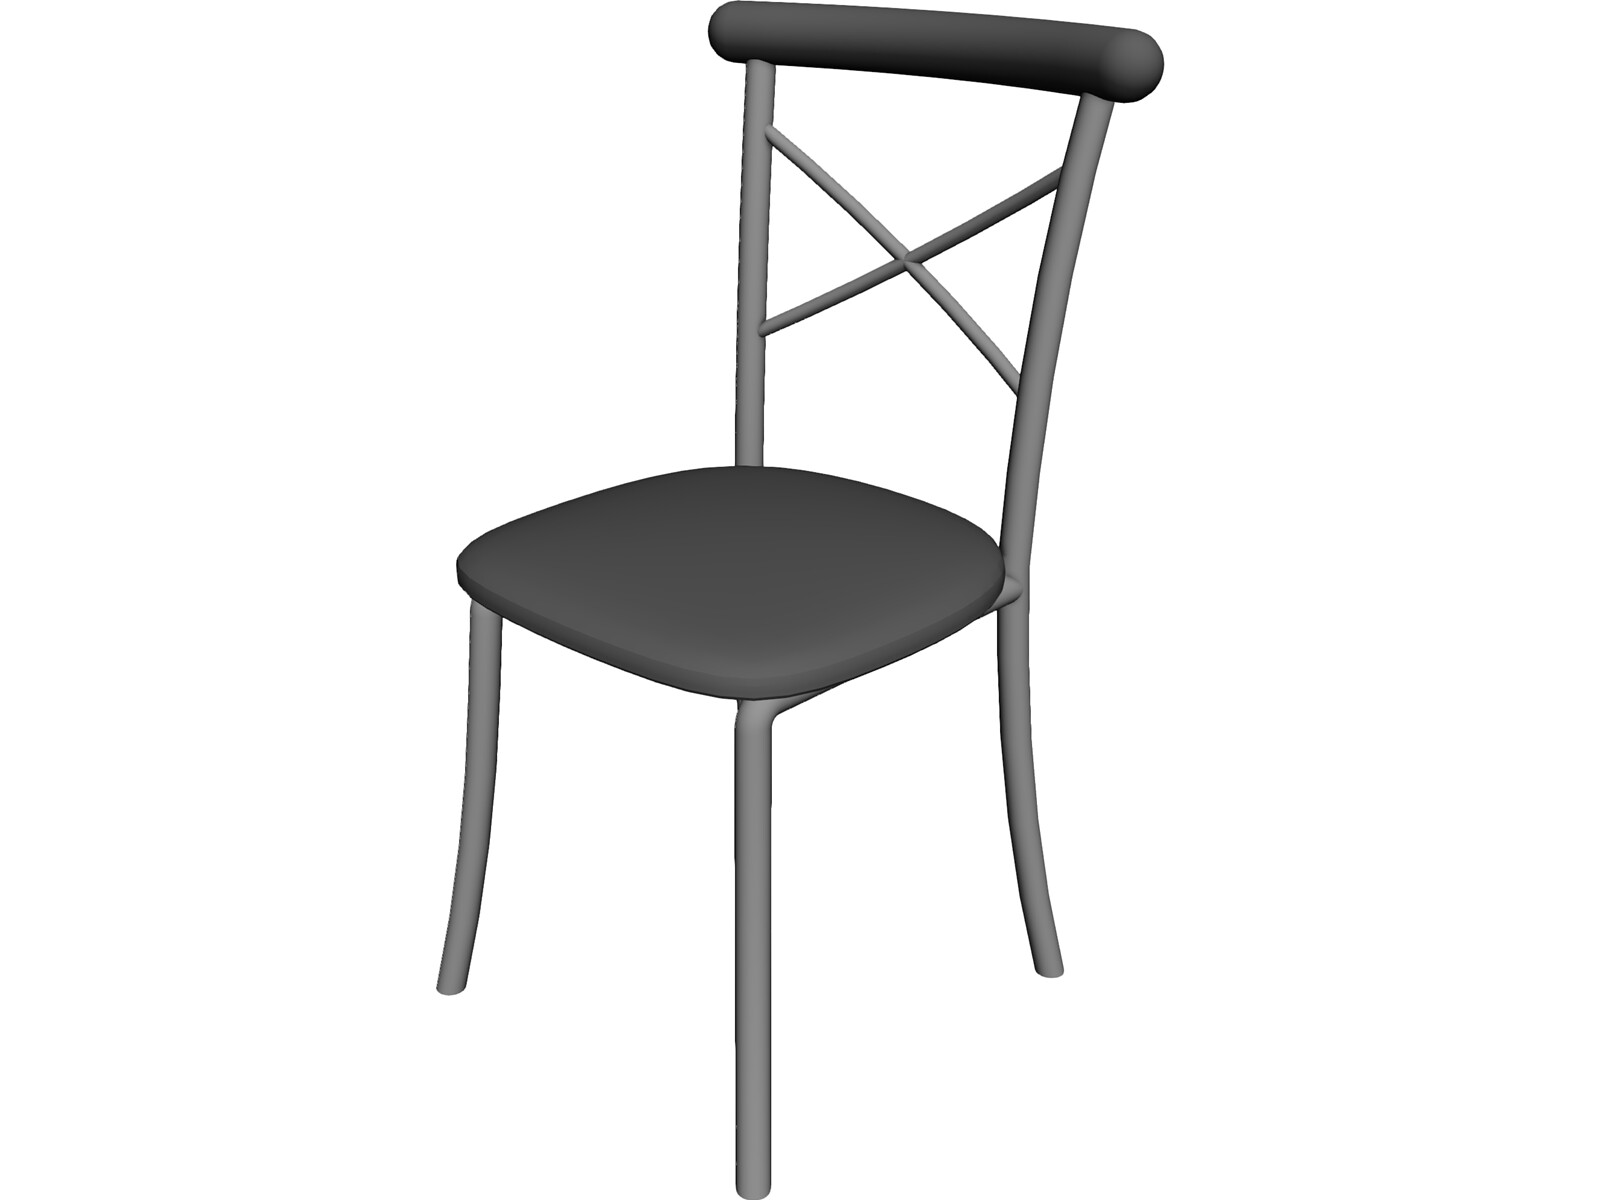 Metal Kitchen Chair with Padded Back 3D Model - 3D CAD Browser